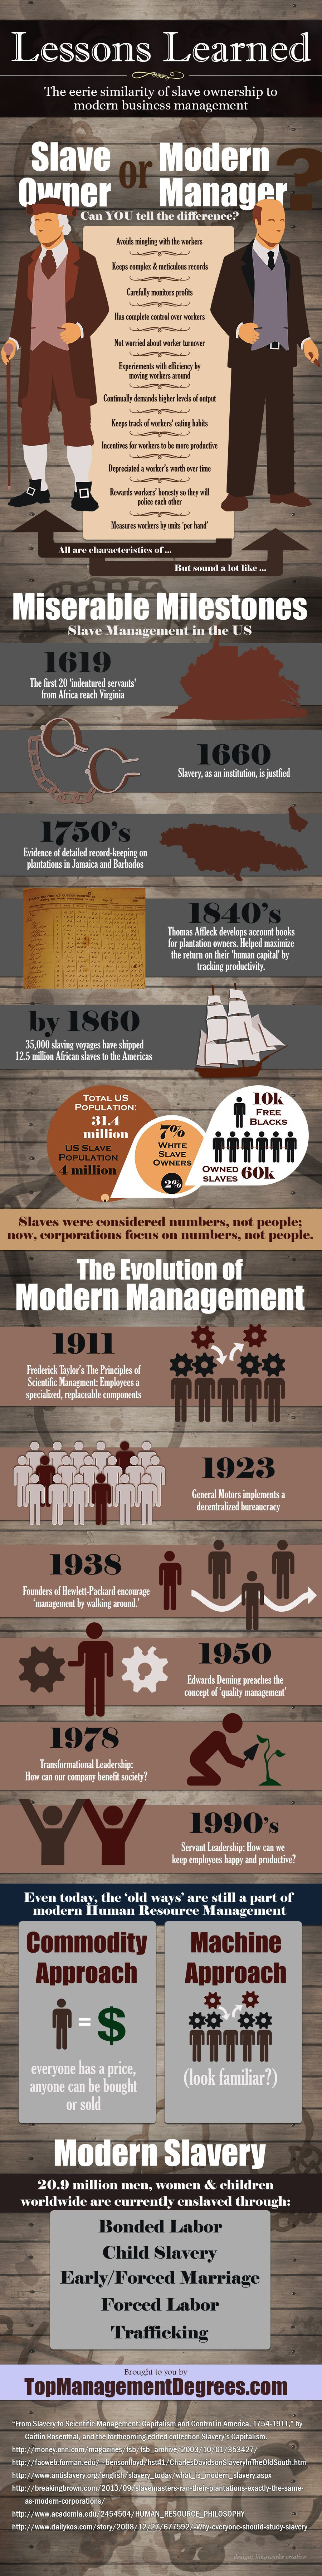 Slave Owners vs Modern Management